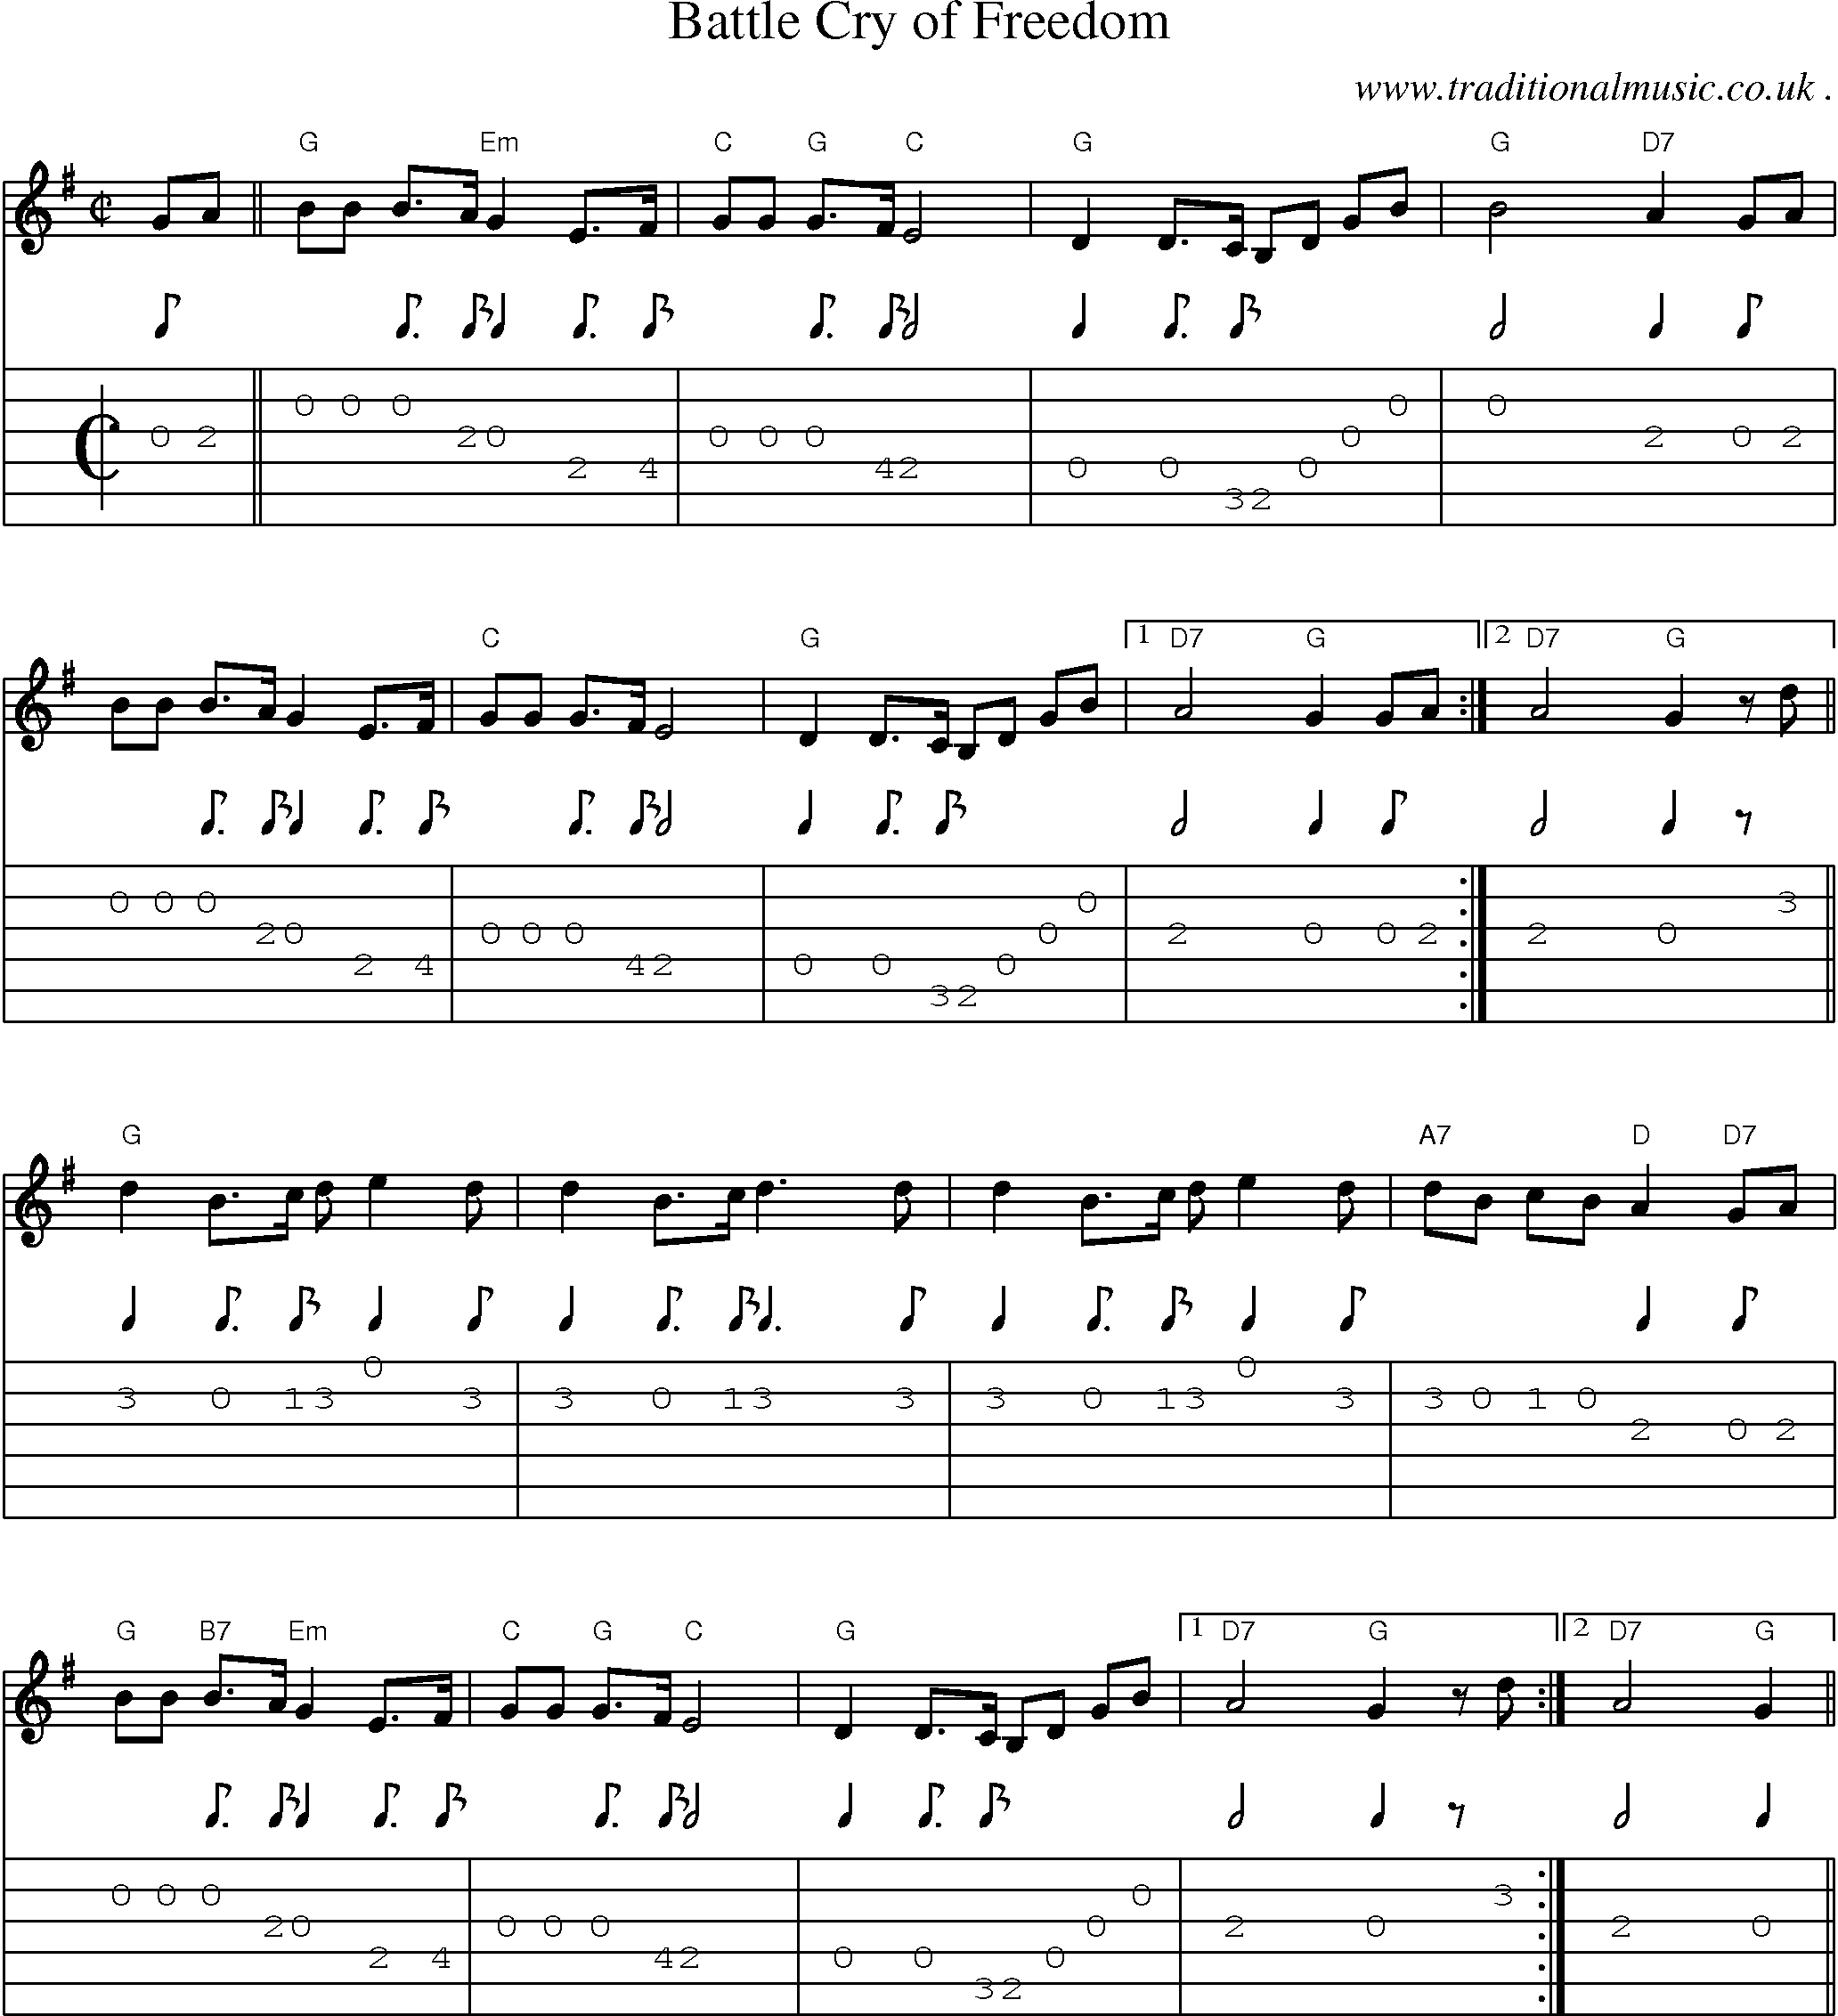 American Old Time Music Scores And Tabs For Guitar Battle Cry Of